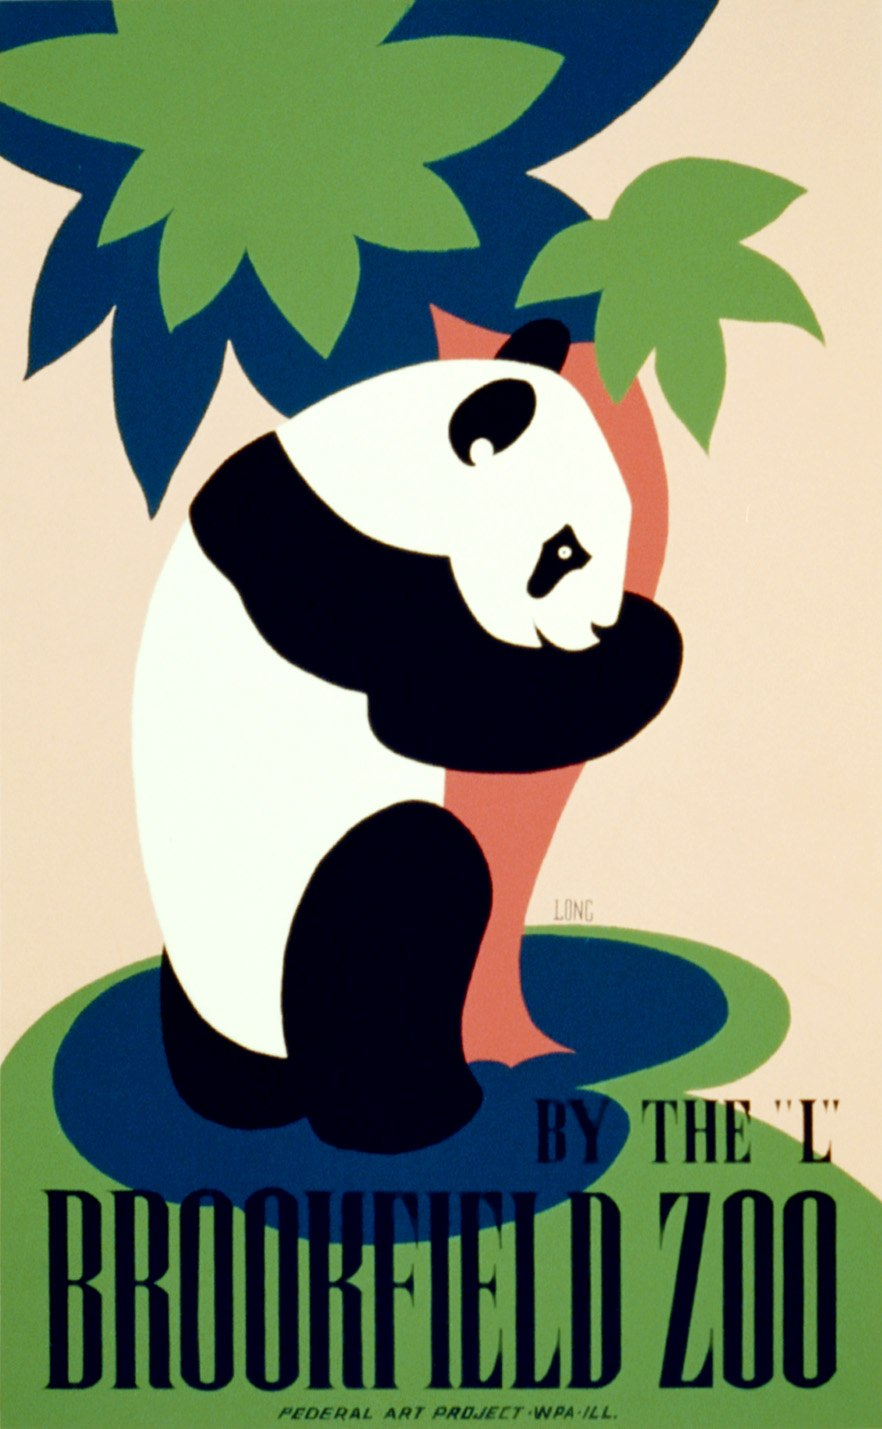 Brookfield Zoo 1938 poster